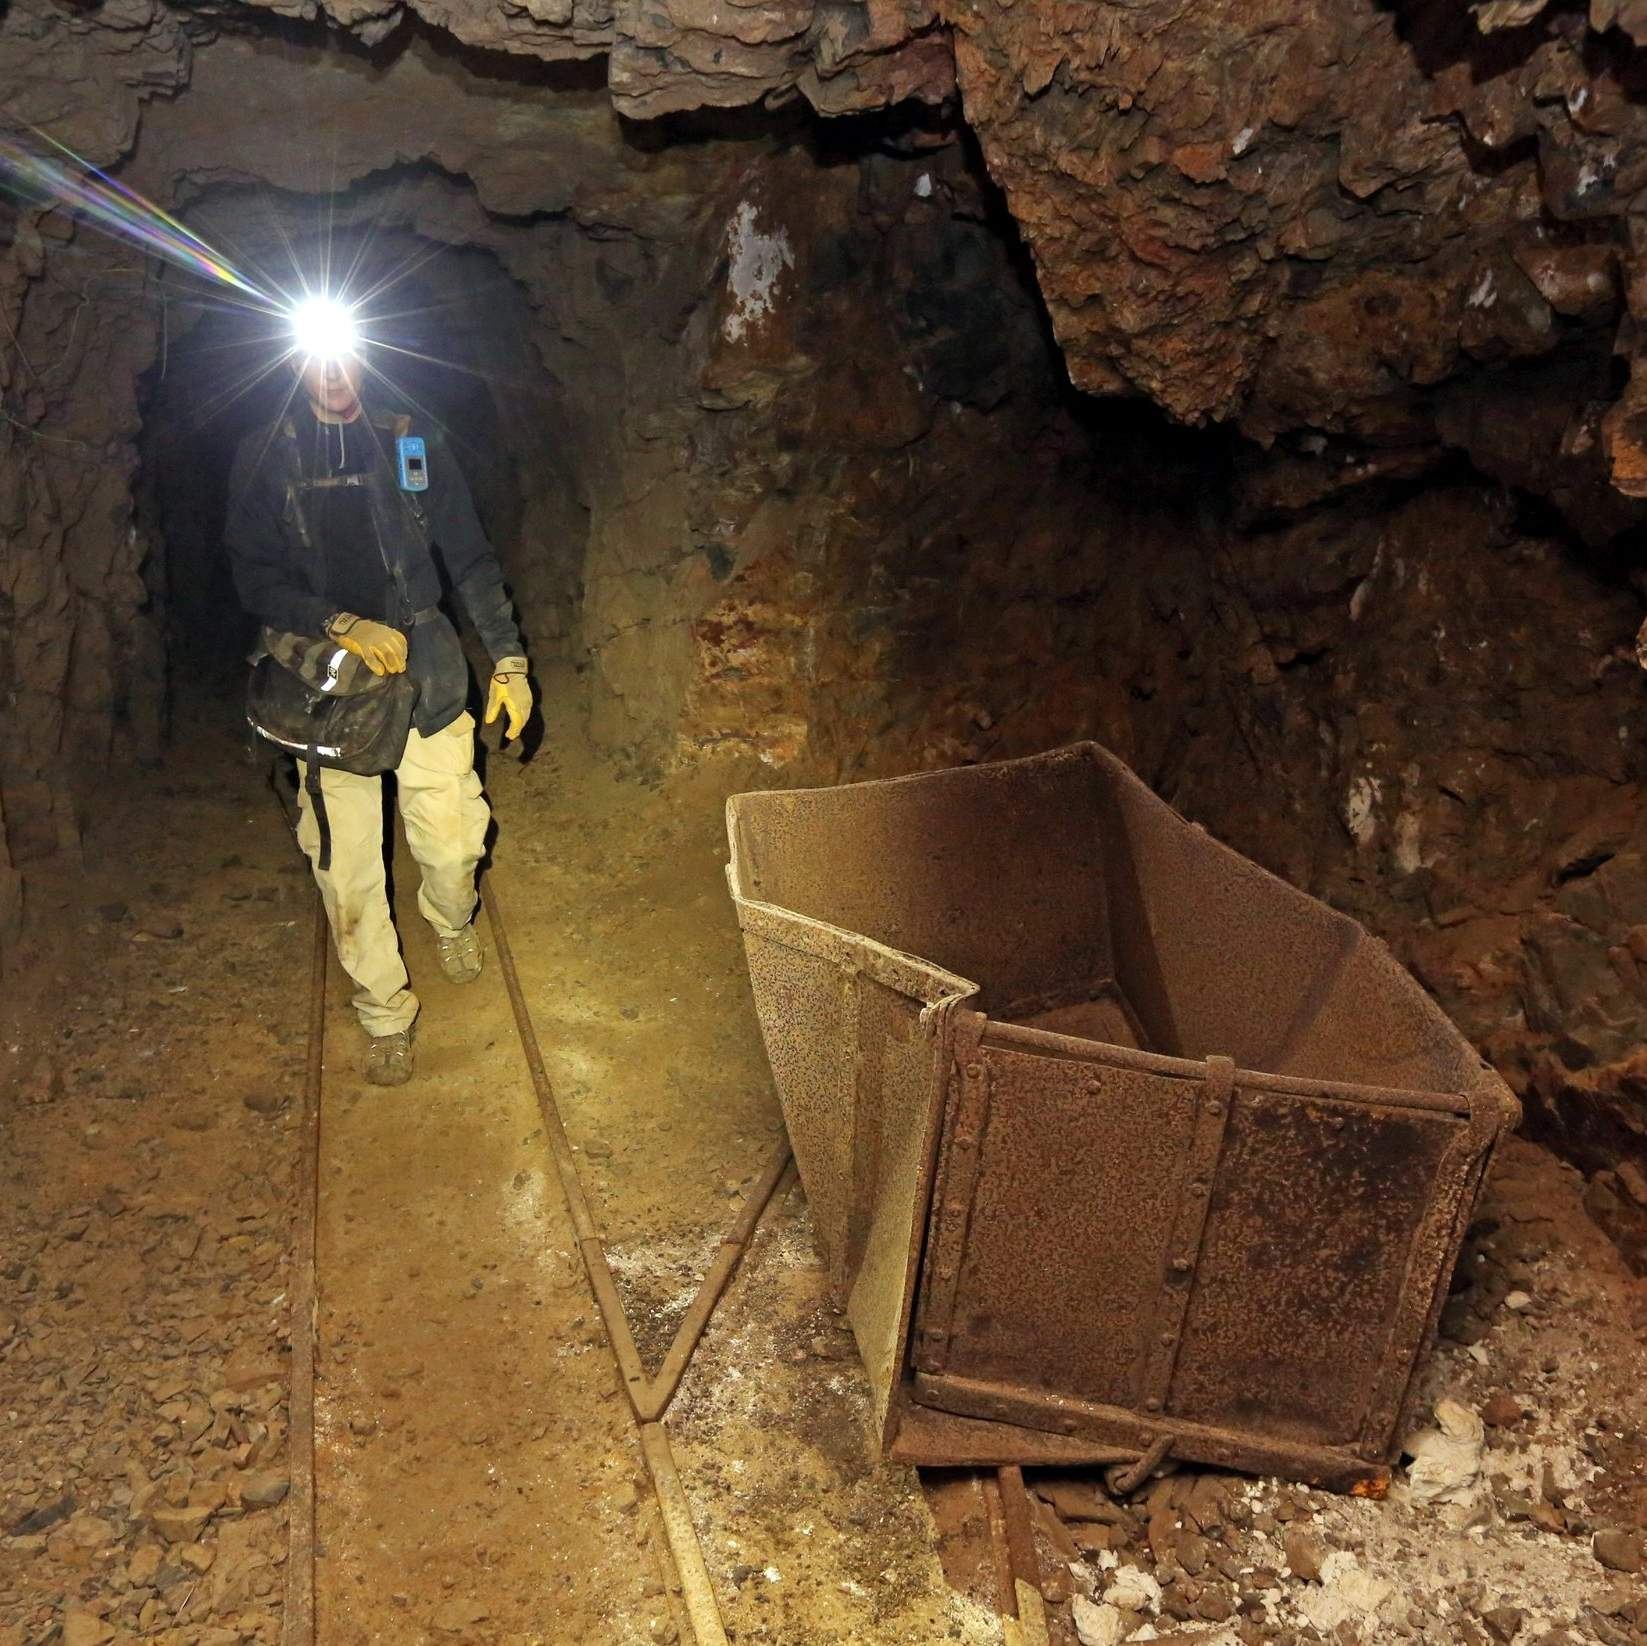 The allure and danger of old mines across the West